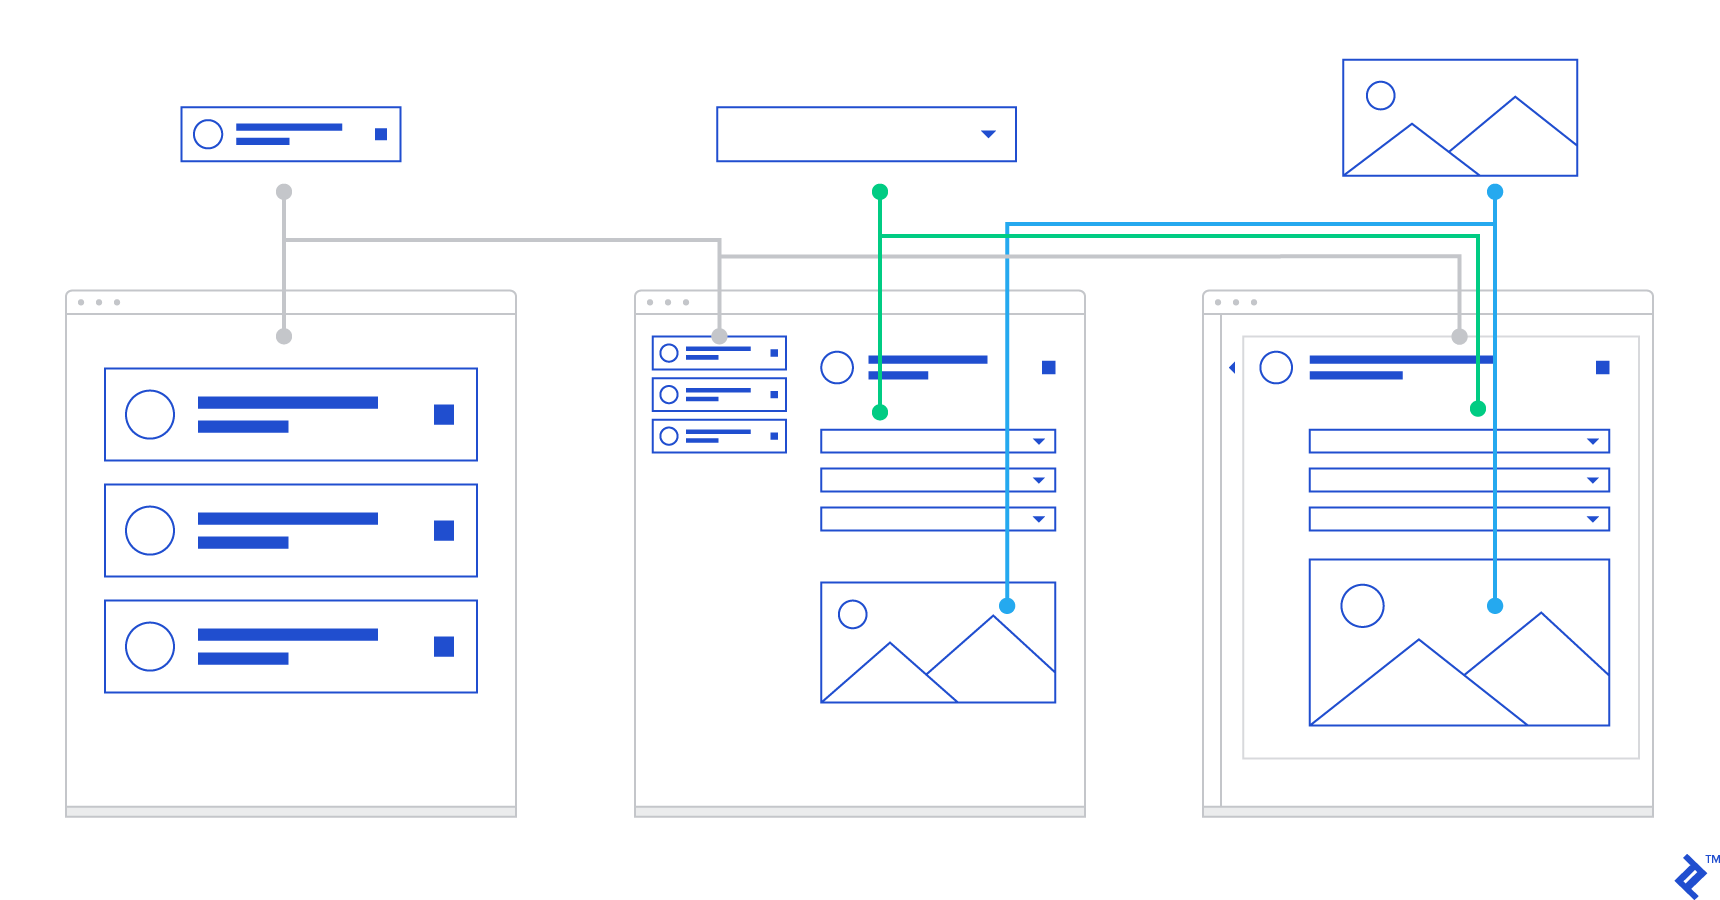 Display components used modularly throughout the application for user experience testing